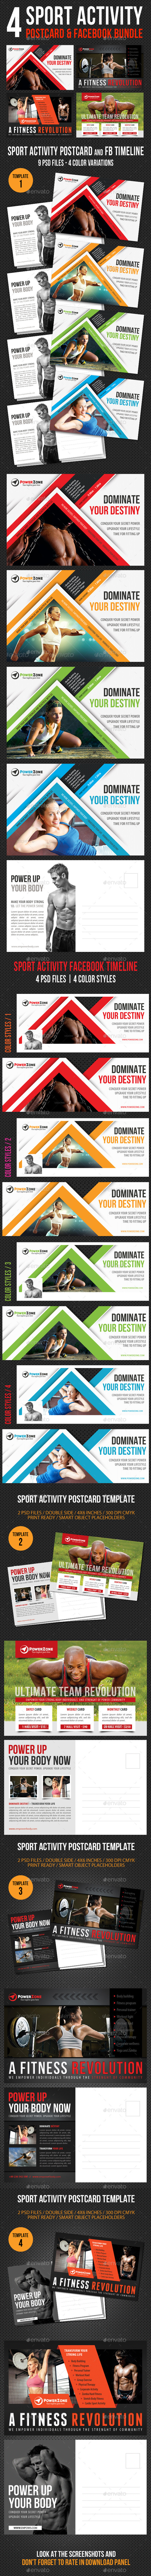 GraphicRiver 4 in 1 Sport Activity Postcard and FB Bundle 02 10338285